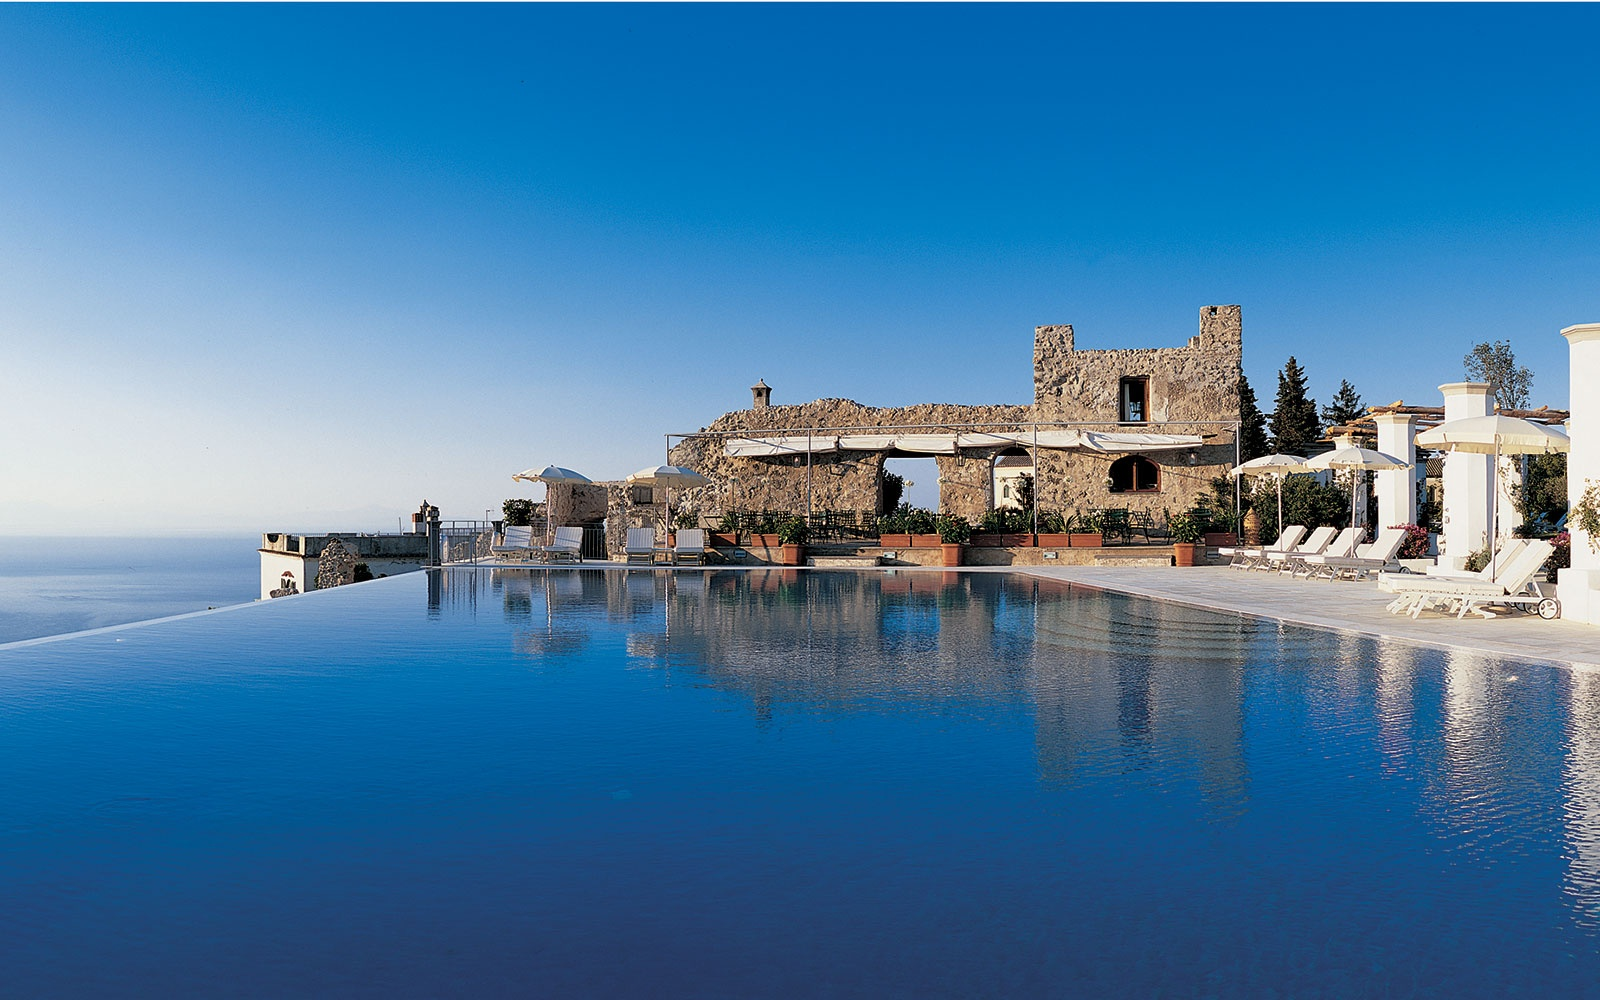 infinity pool at Belmond Hotel Caruso, Ravello, Italy